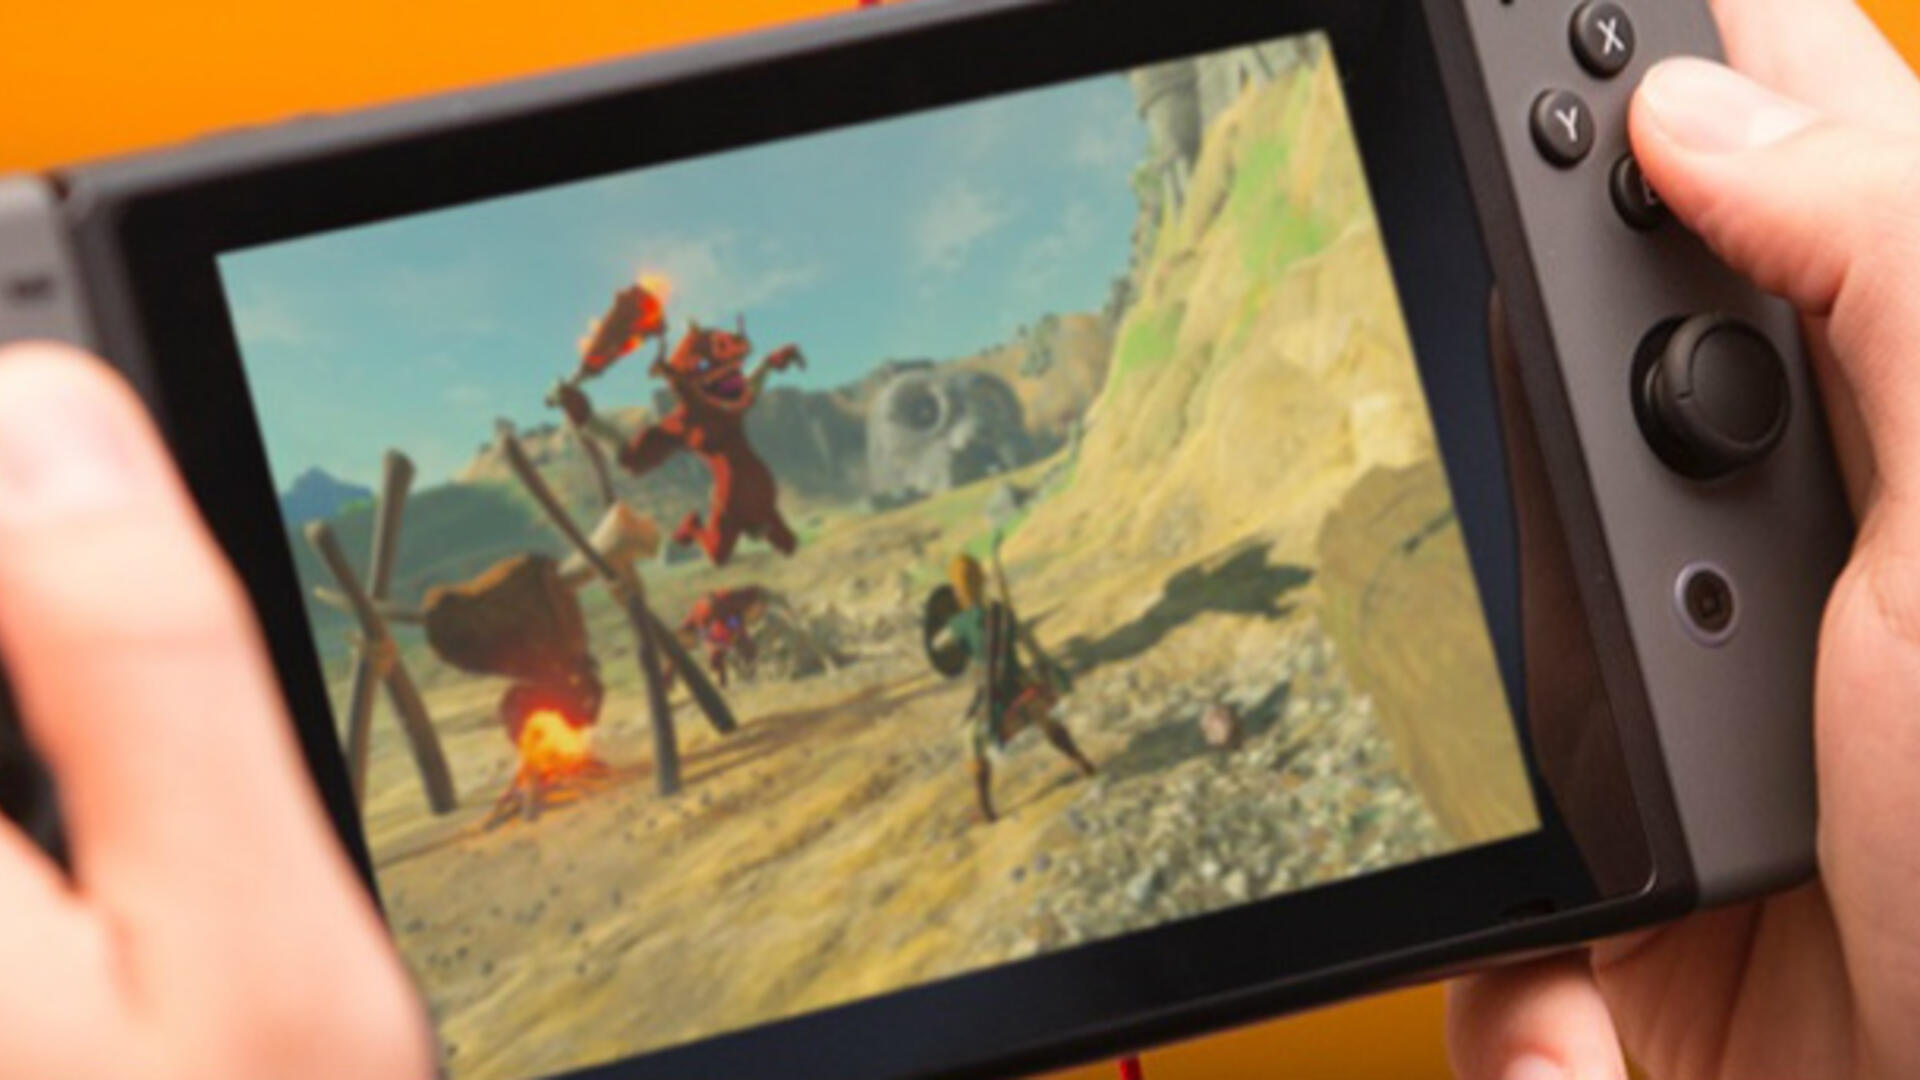 How to Use Voice Chat On Nintendo Switch to Chat With Friends | USgamer